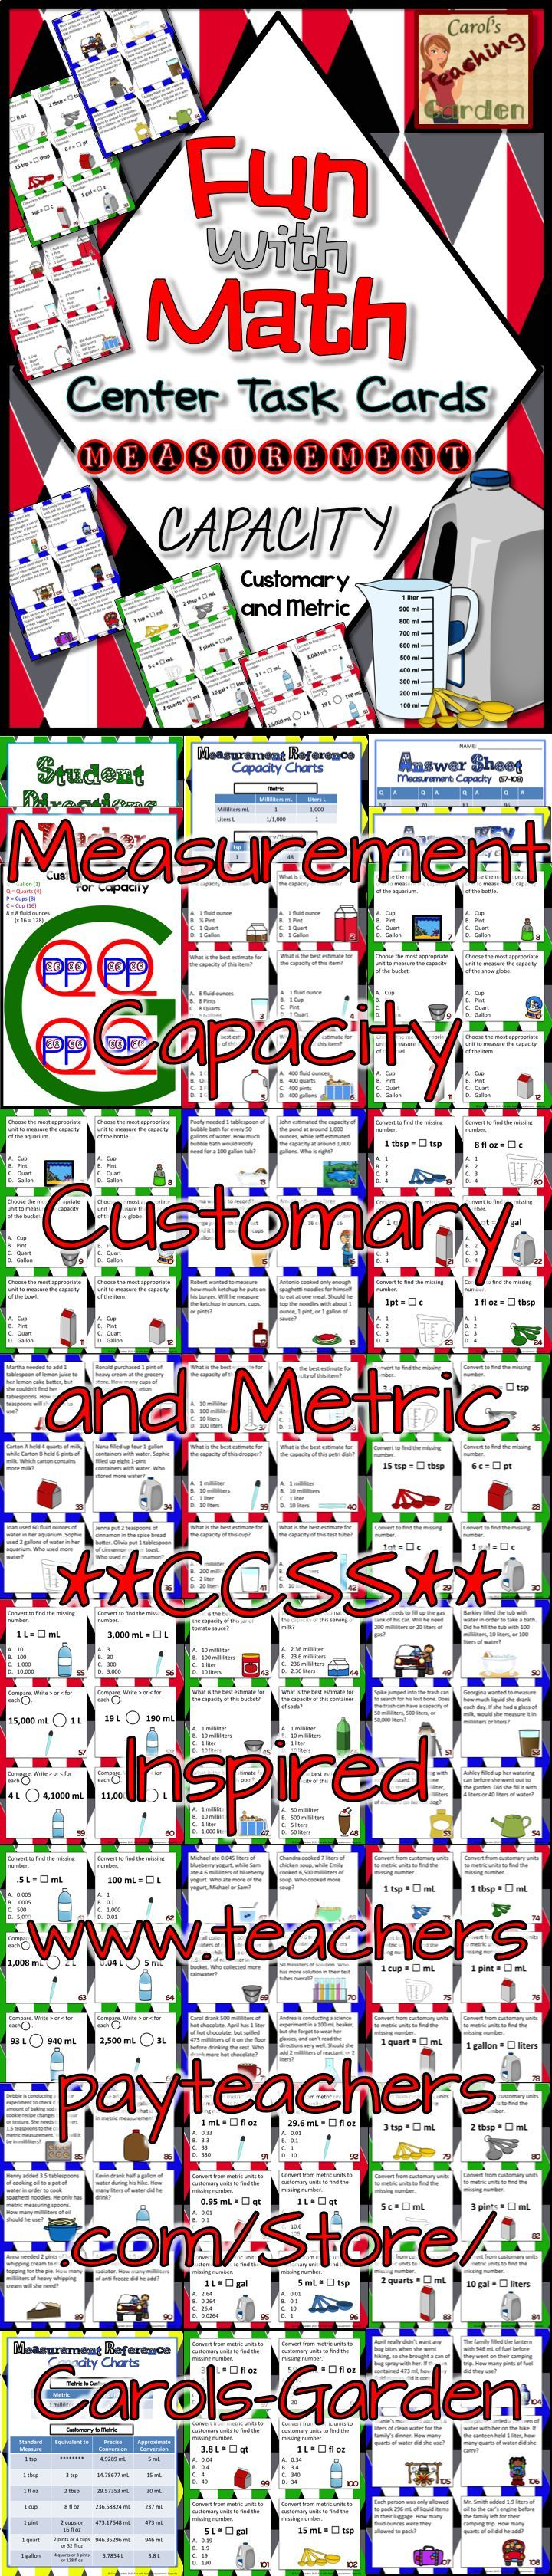 #CCSS Inspired: 108 #measurement #capacity #customary and #metric #TaskCards, including 18 each for low, medium, and high students for standards taught, including: estimating the customary or metric capacity of various items, converting from one customary or metric measurement to another, converting from customary to metric and from metric to customary measurement, Student and Teacher directions, Conversion charts for metric, customary, metric to customary, and customary to metric, Answer…